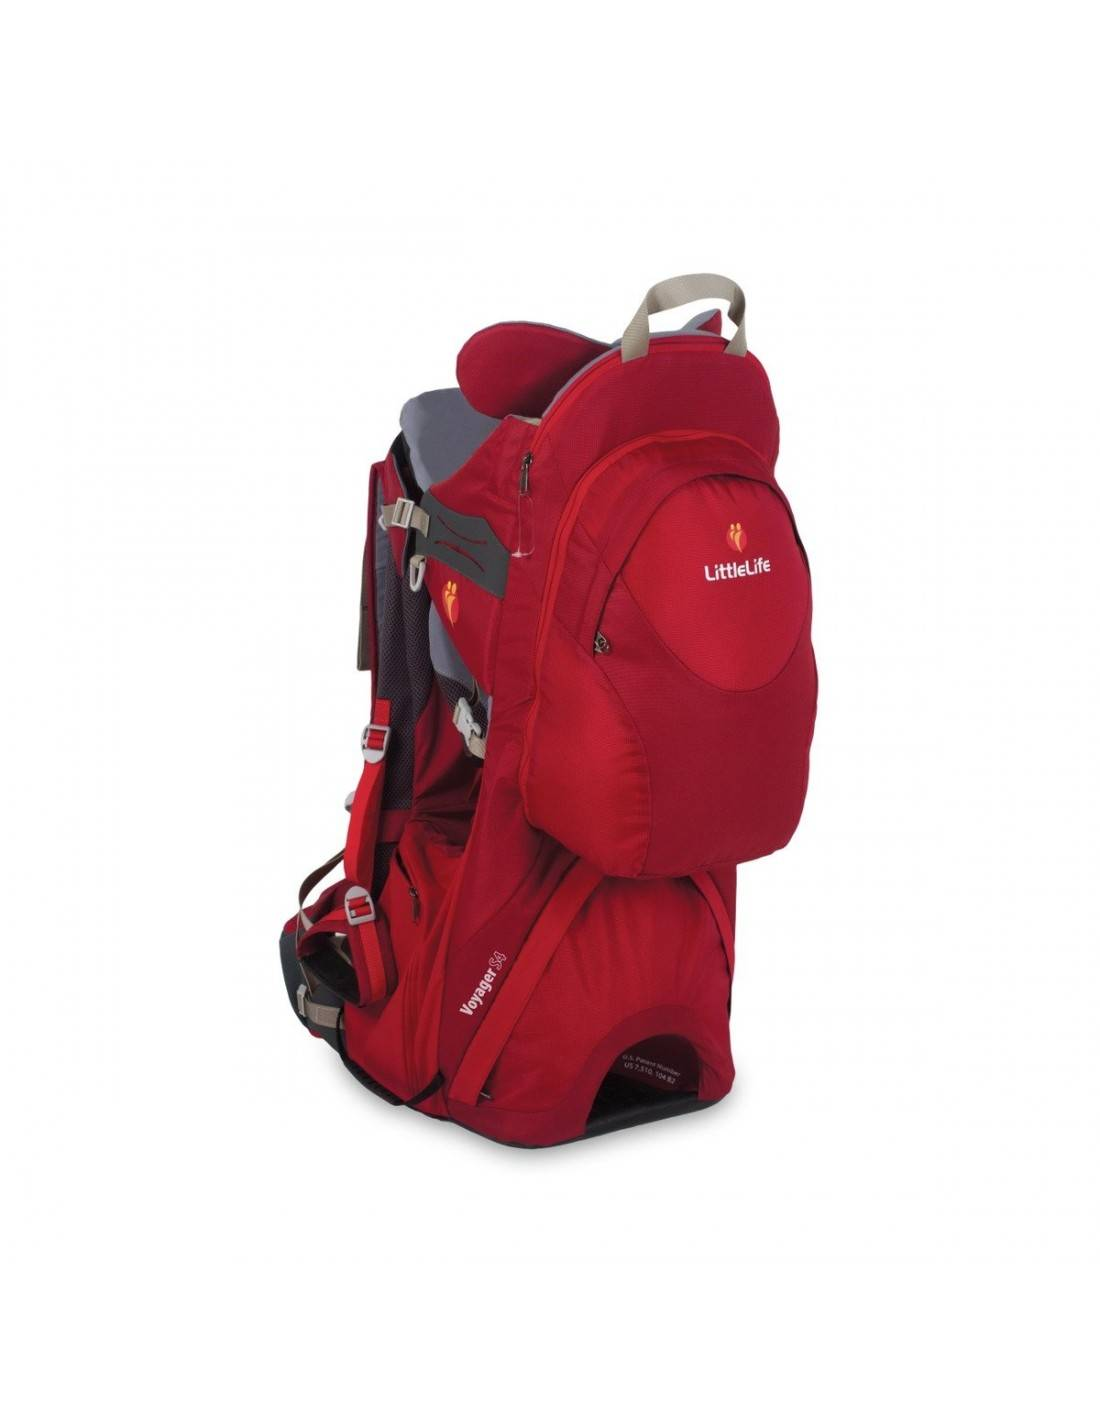 Littlelife Bæremeis Voyager S4 Child Carrier